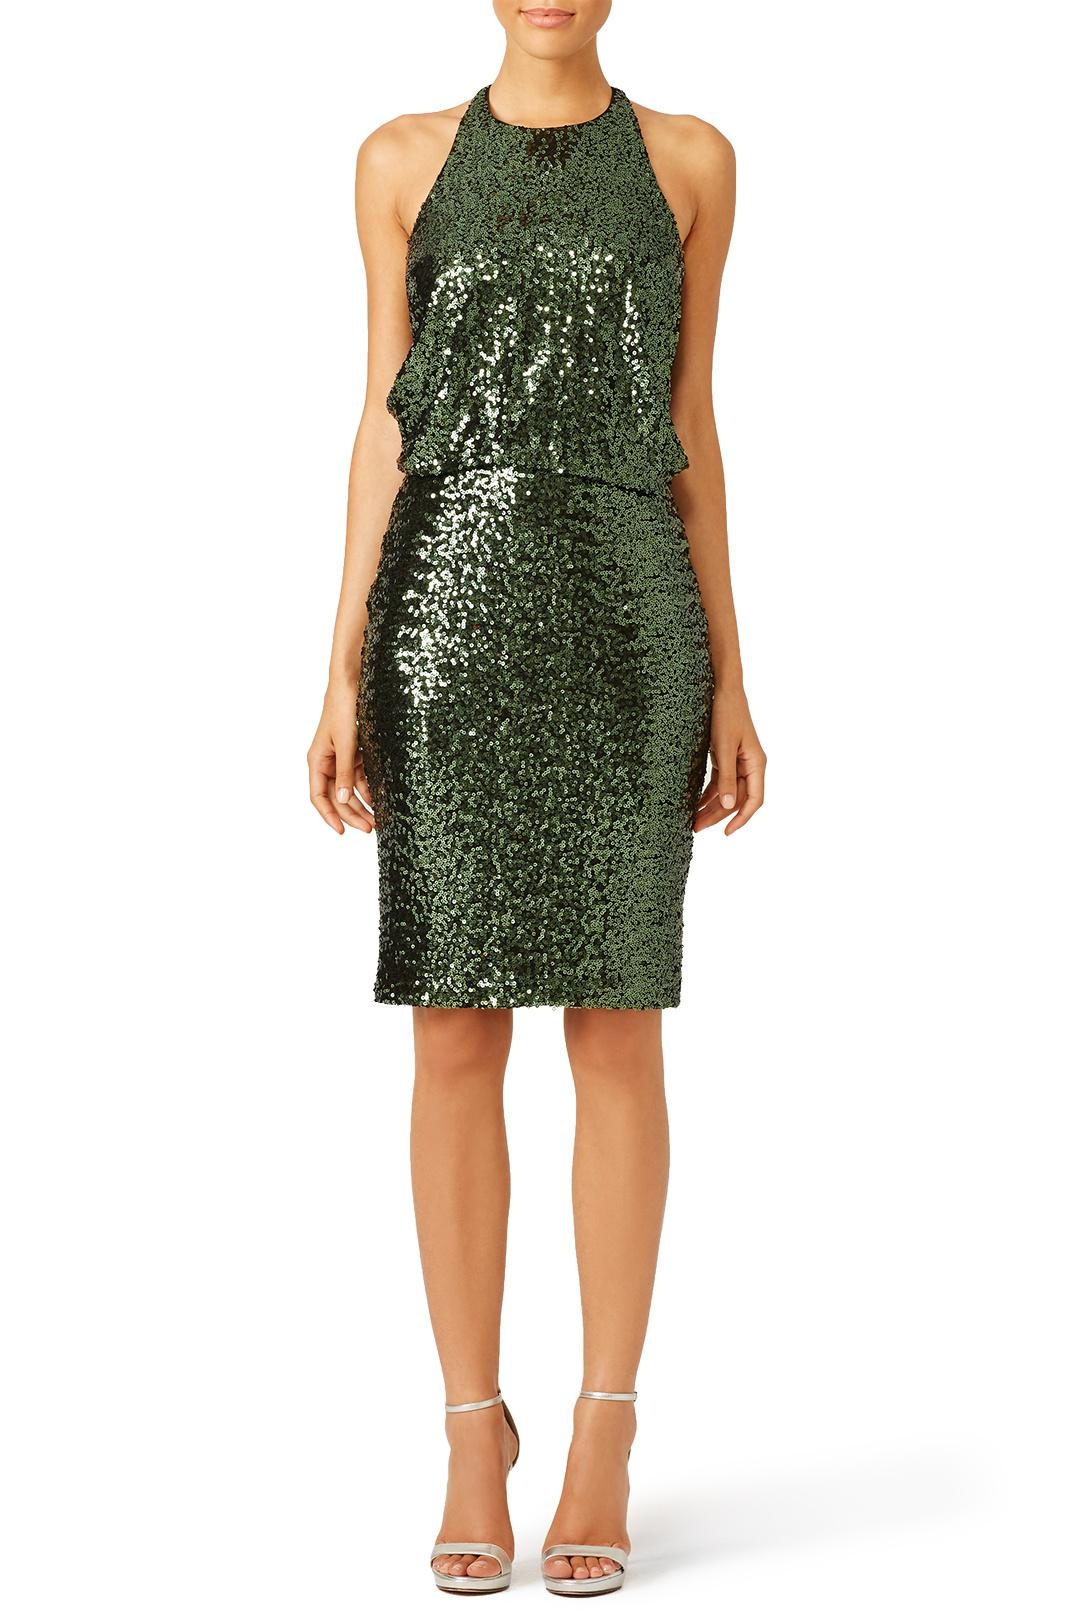 Badgley Mischka - Evergreen Sequin Dress